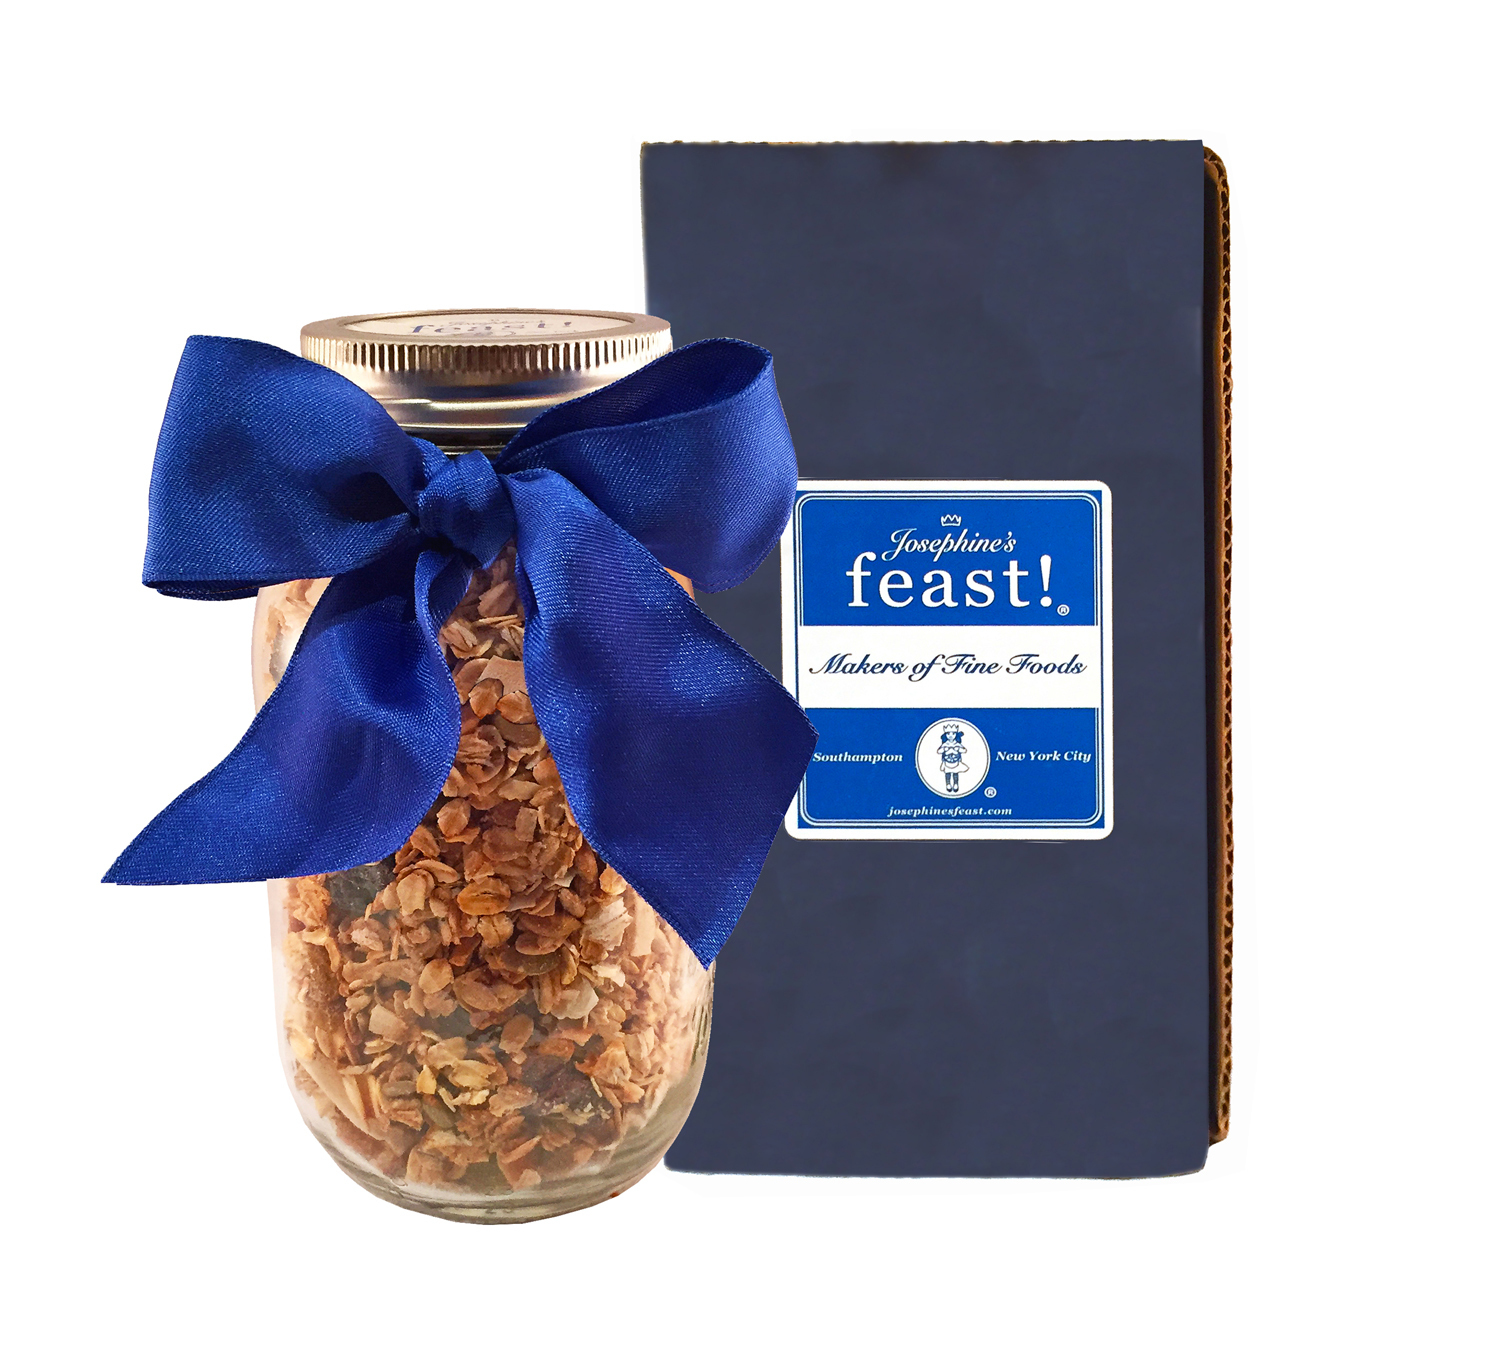 24 Karat Sunday Morning Granola in a Limited Edition Gift Box 00049